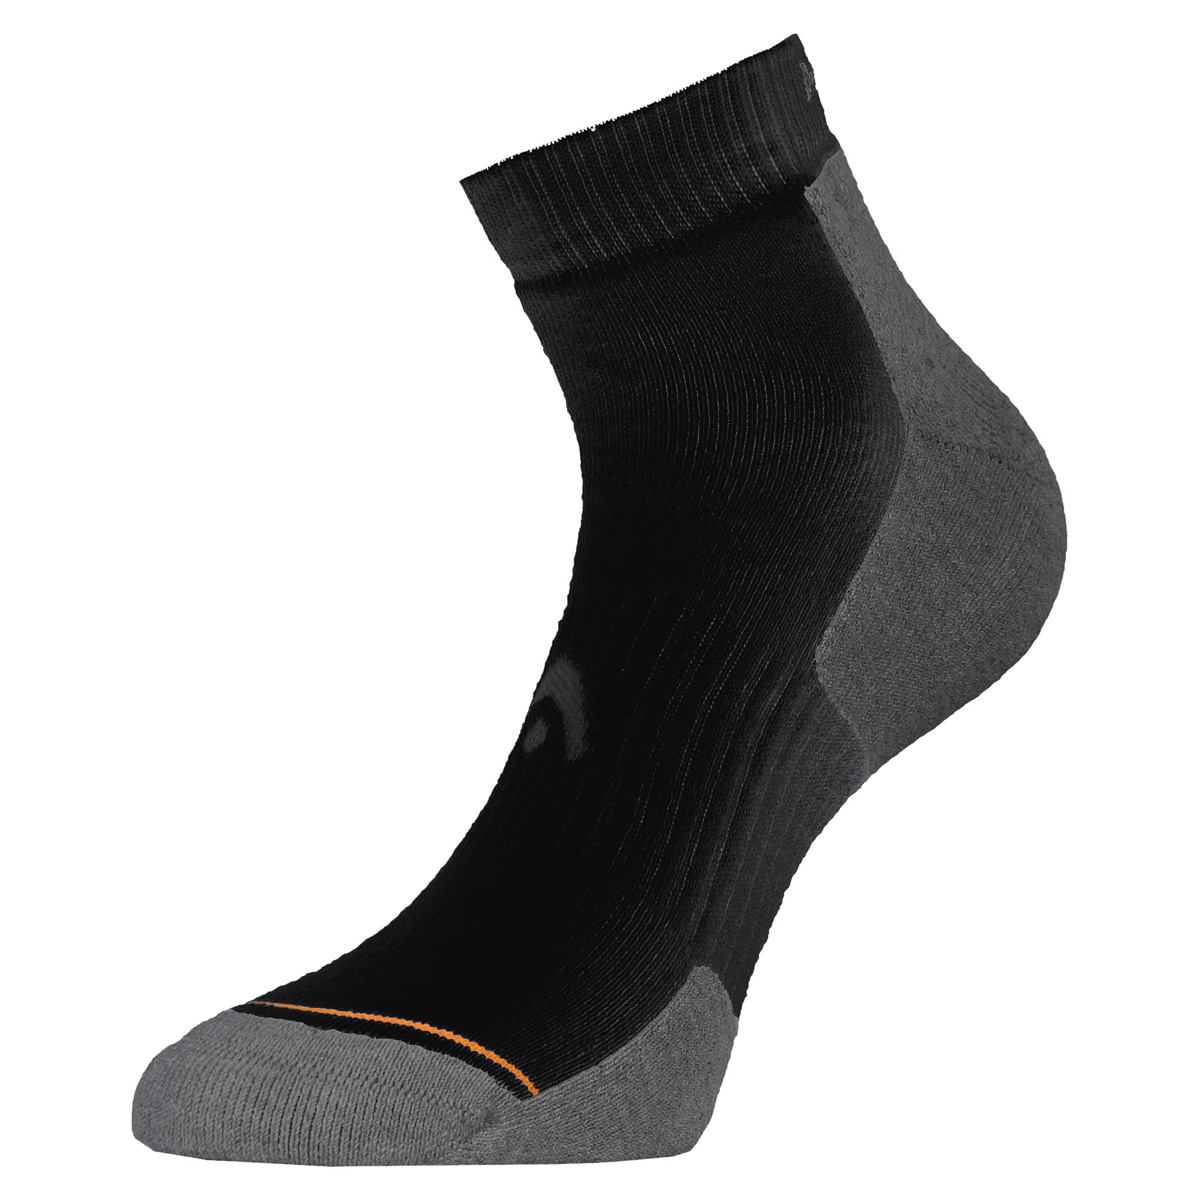 Head Socks Tennis Quarter Athletes Nere 1